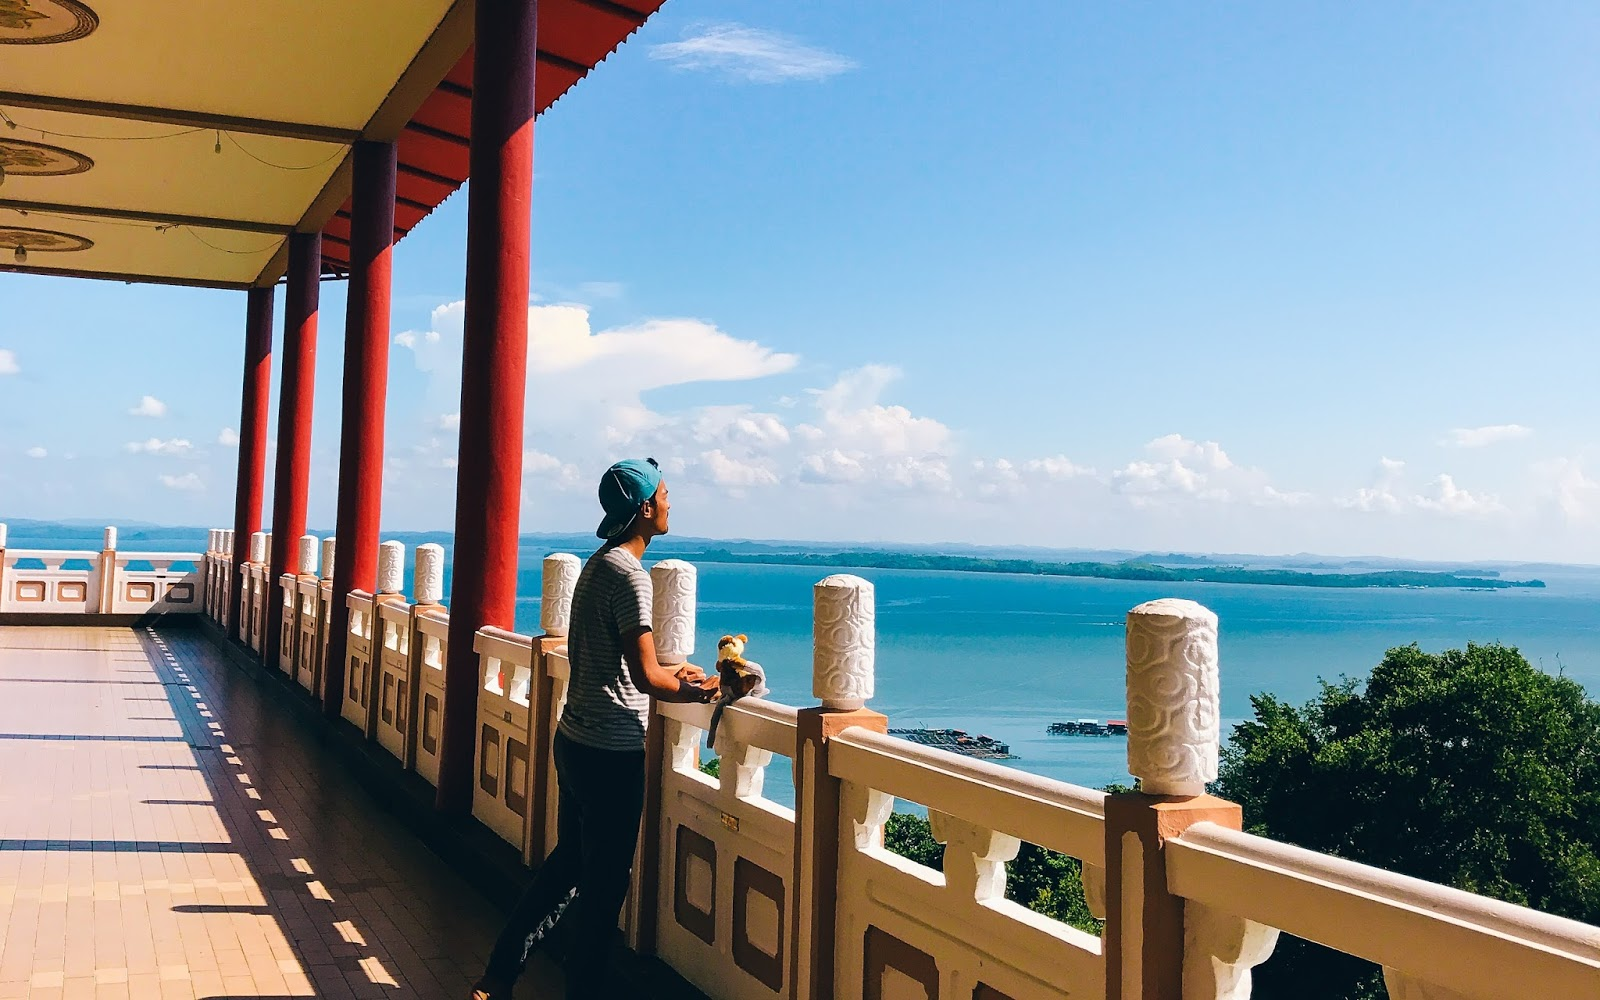 5 Top Places To Visit In Sandakan (Part 2)